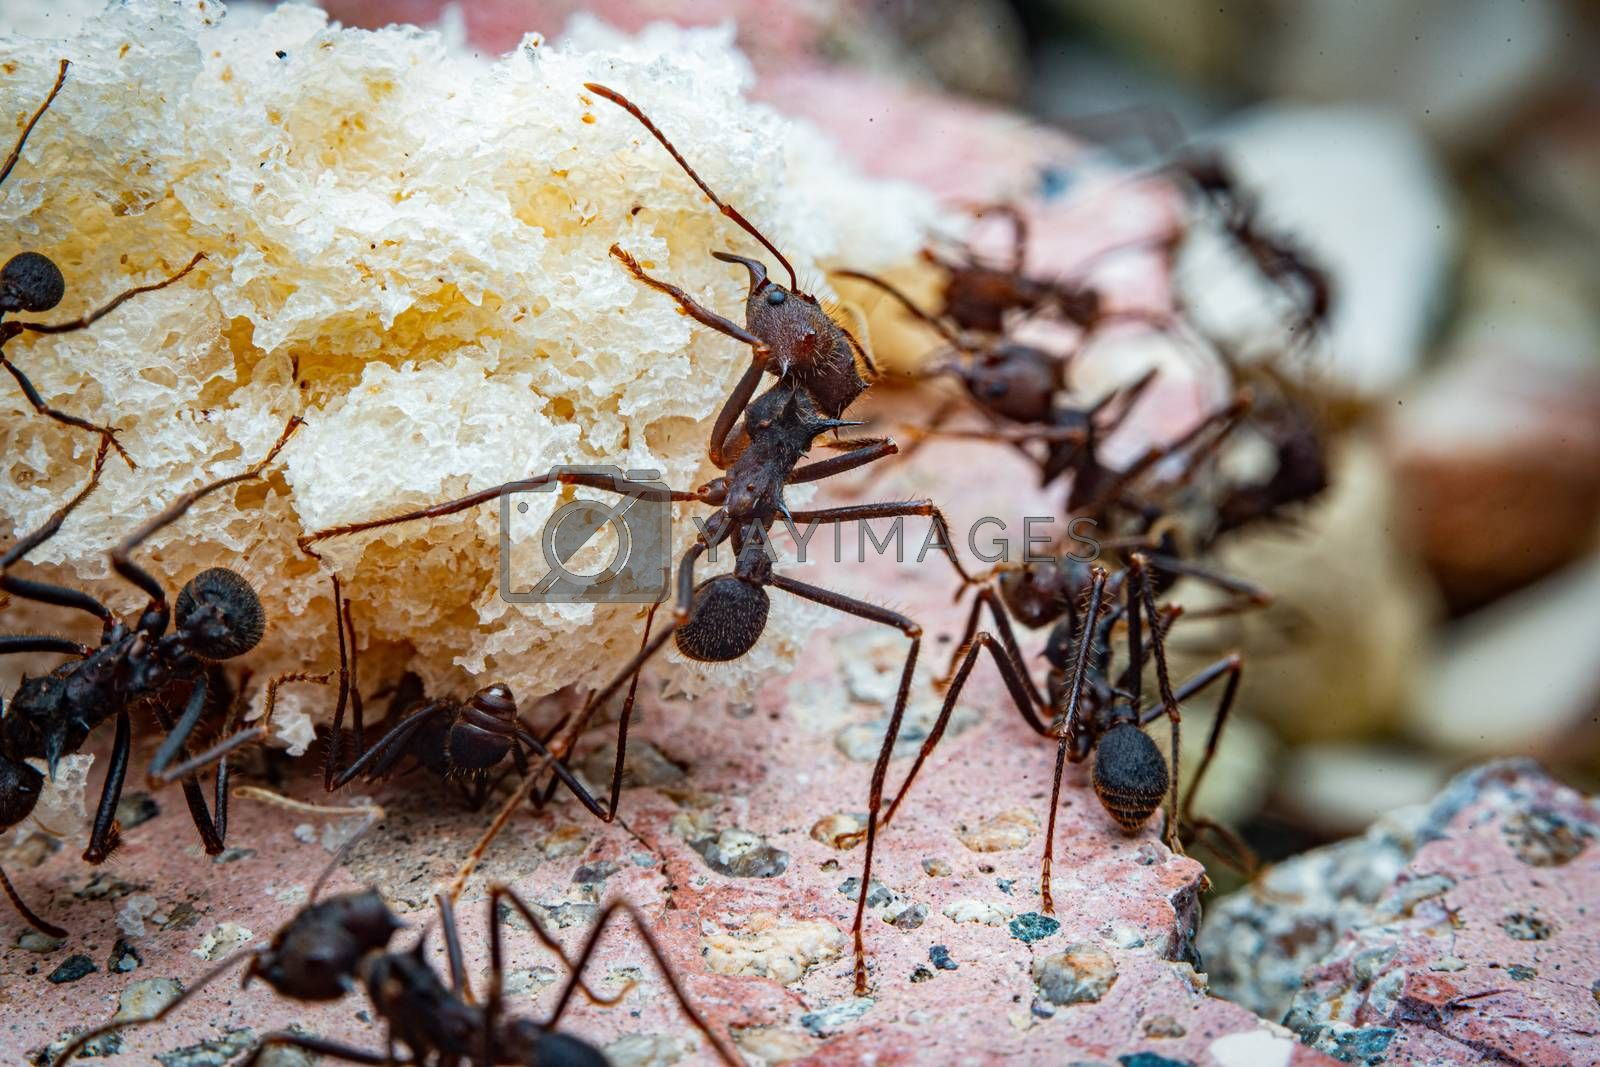 Macro photograph of leaf cutter ants on a piece of bread